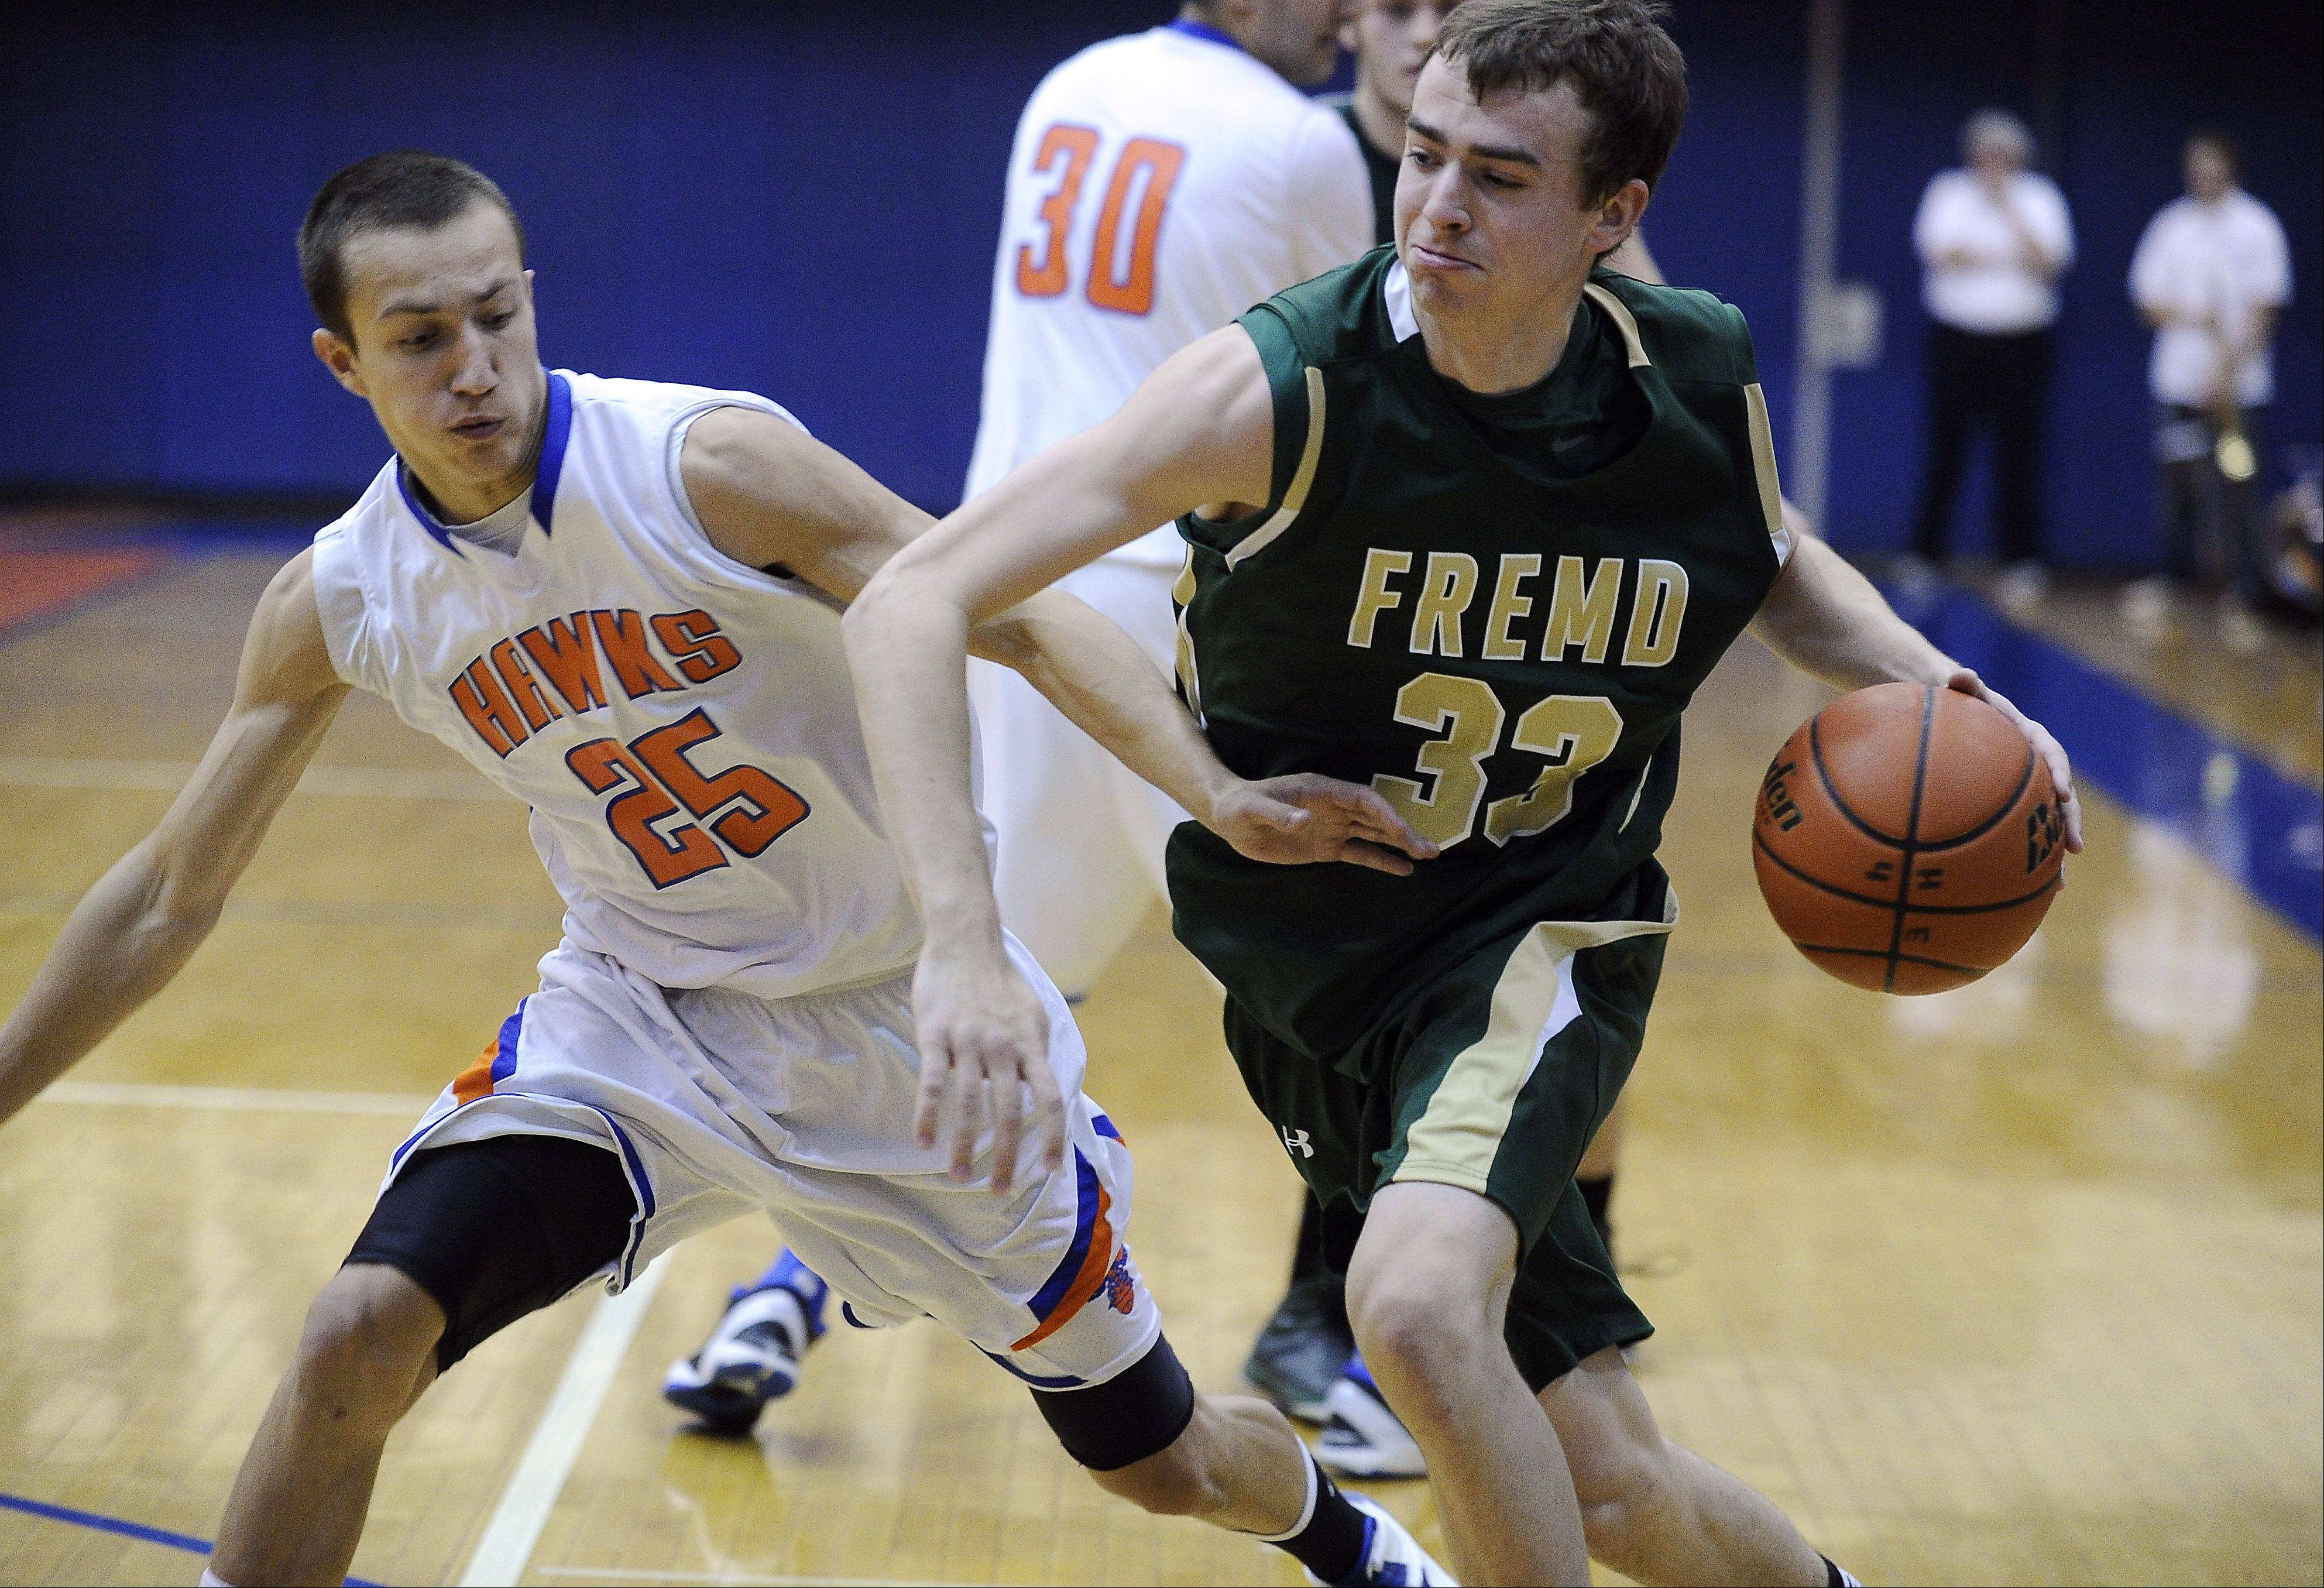 Fremd's Sean Benka drives around Hoffman's Jimmy Ward during Thursday's basketball game at Hoffman Estates High School.